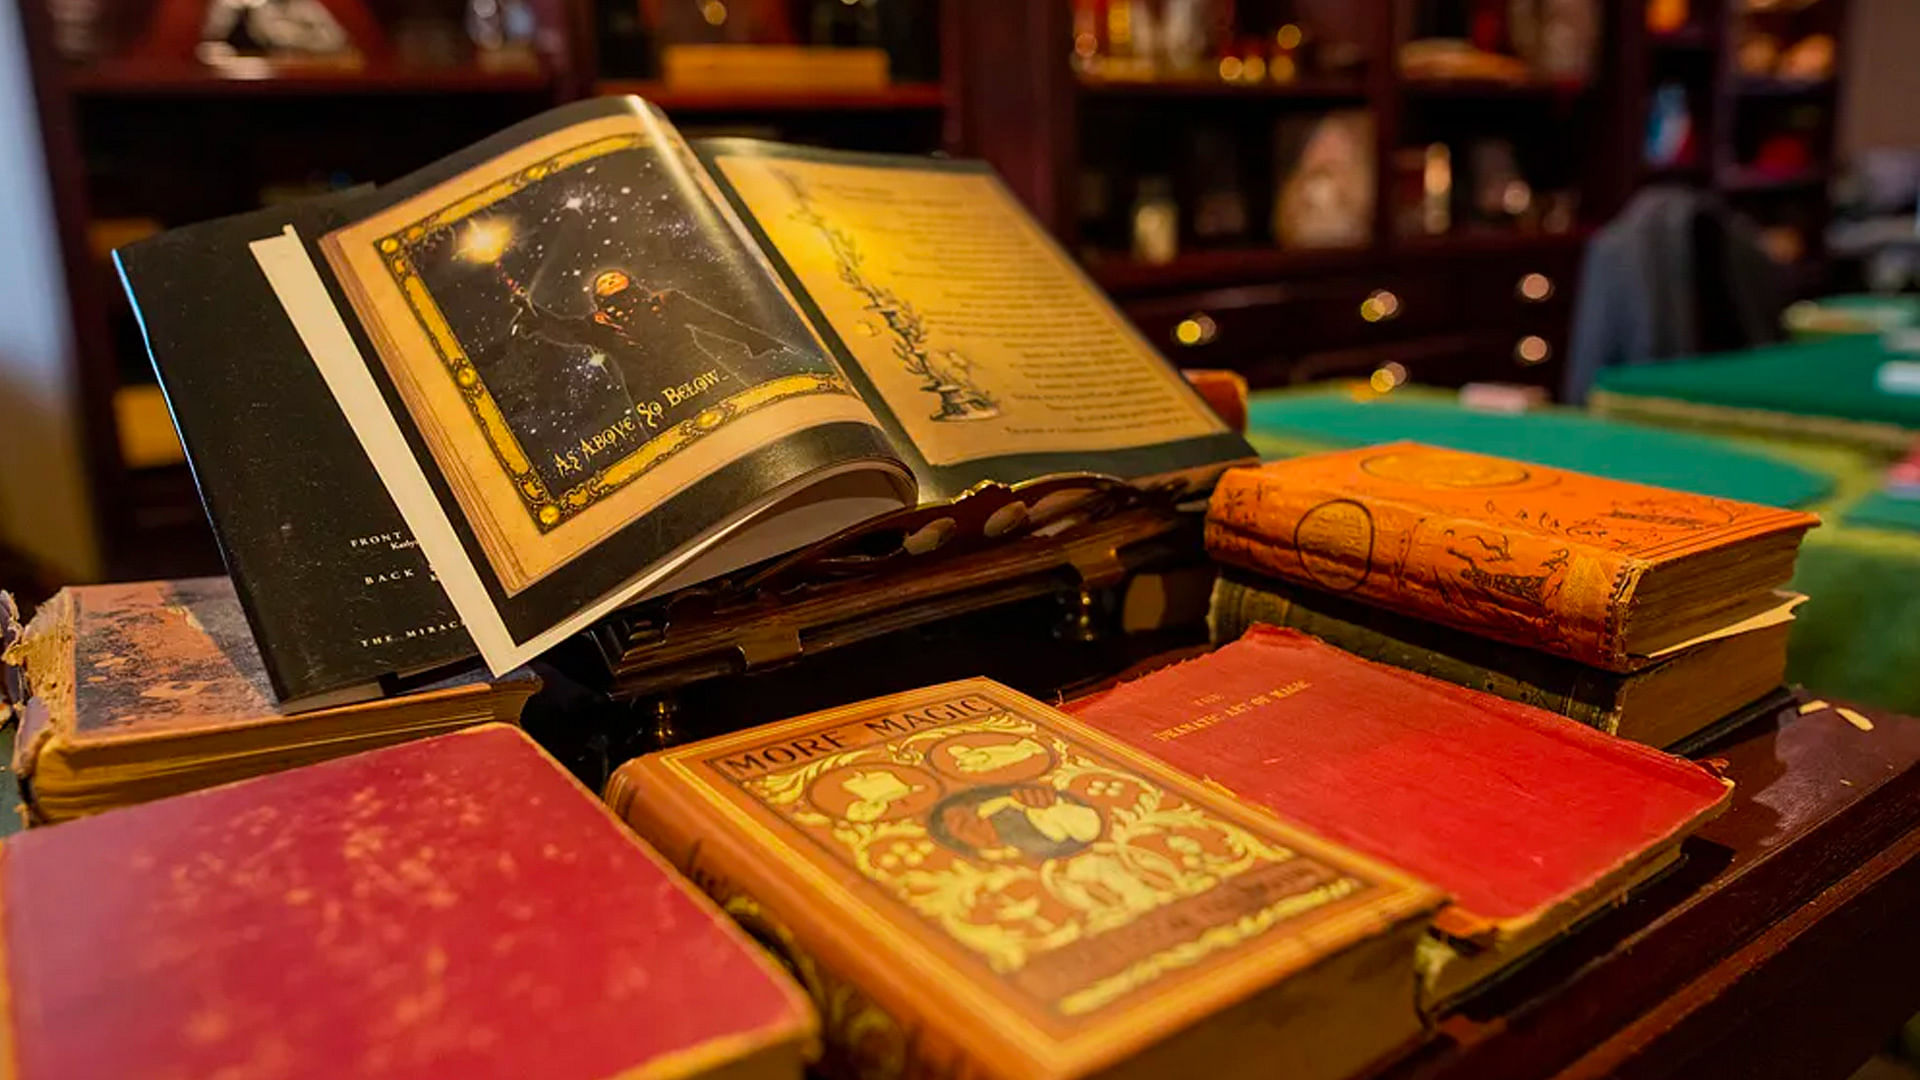 What are popular sleight of hand magic books?